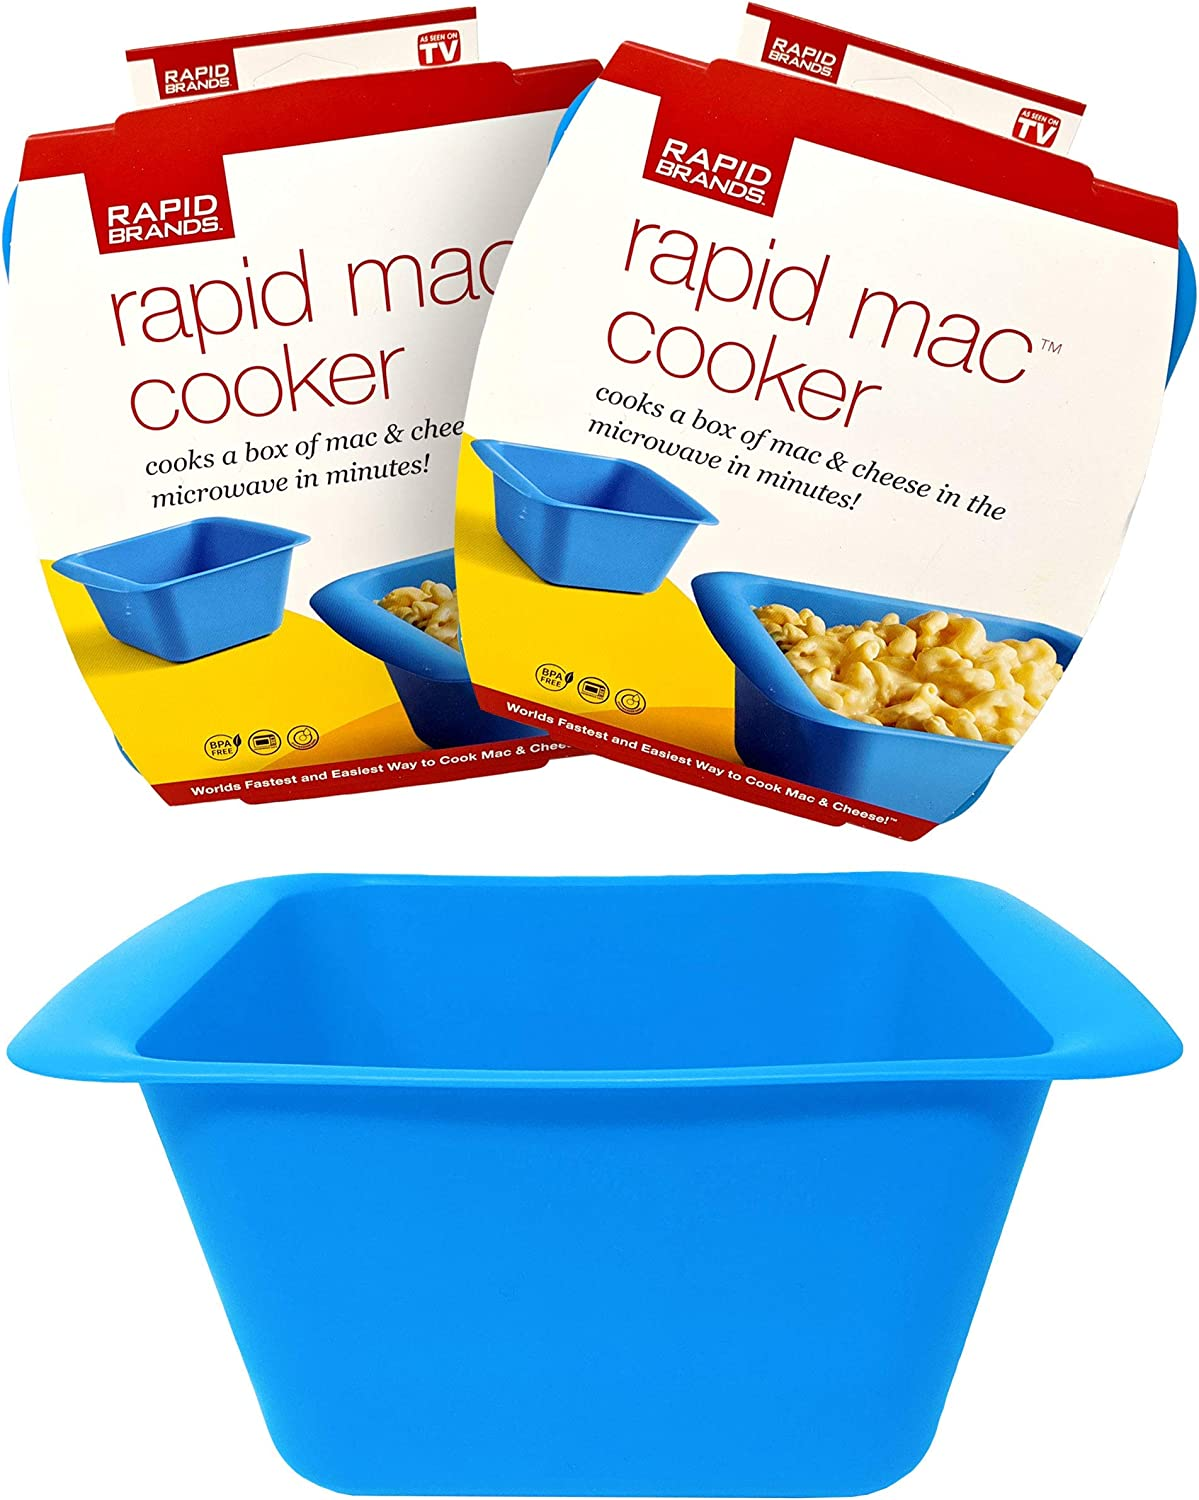 Rapid Mac Cooker | Microwave Macaroni & Cheese in 5 Minutes | Dishwasher-Safe, Microwaveable, & BPA-Free | Perfect for Dorm, Small Kitchen, or Office (Blue, 2 pack)